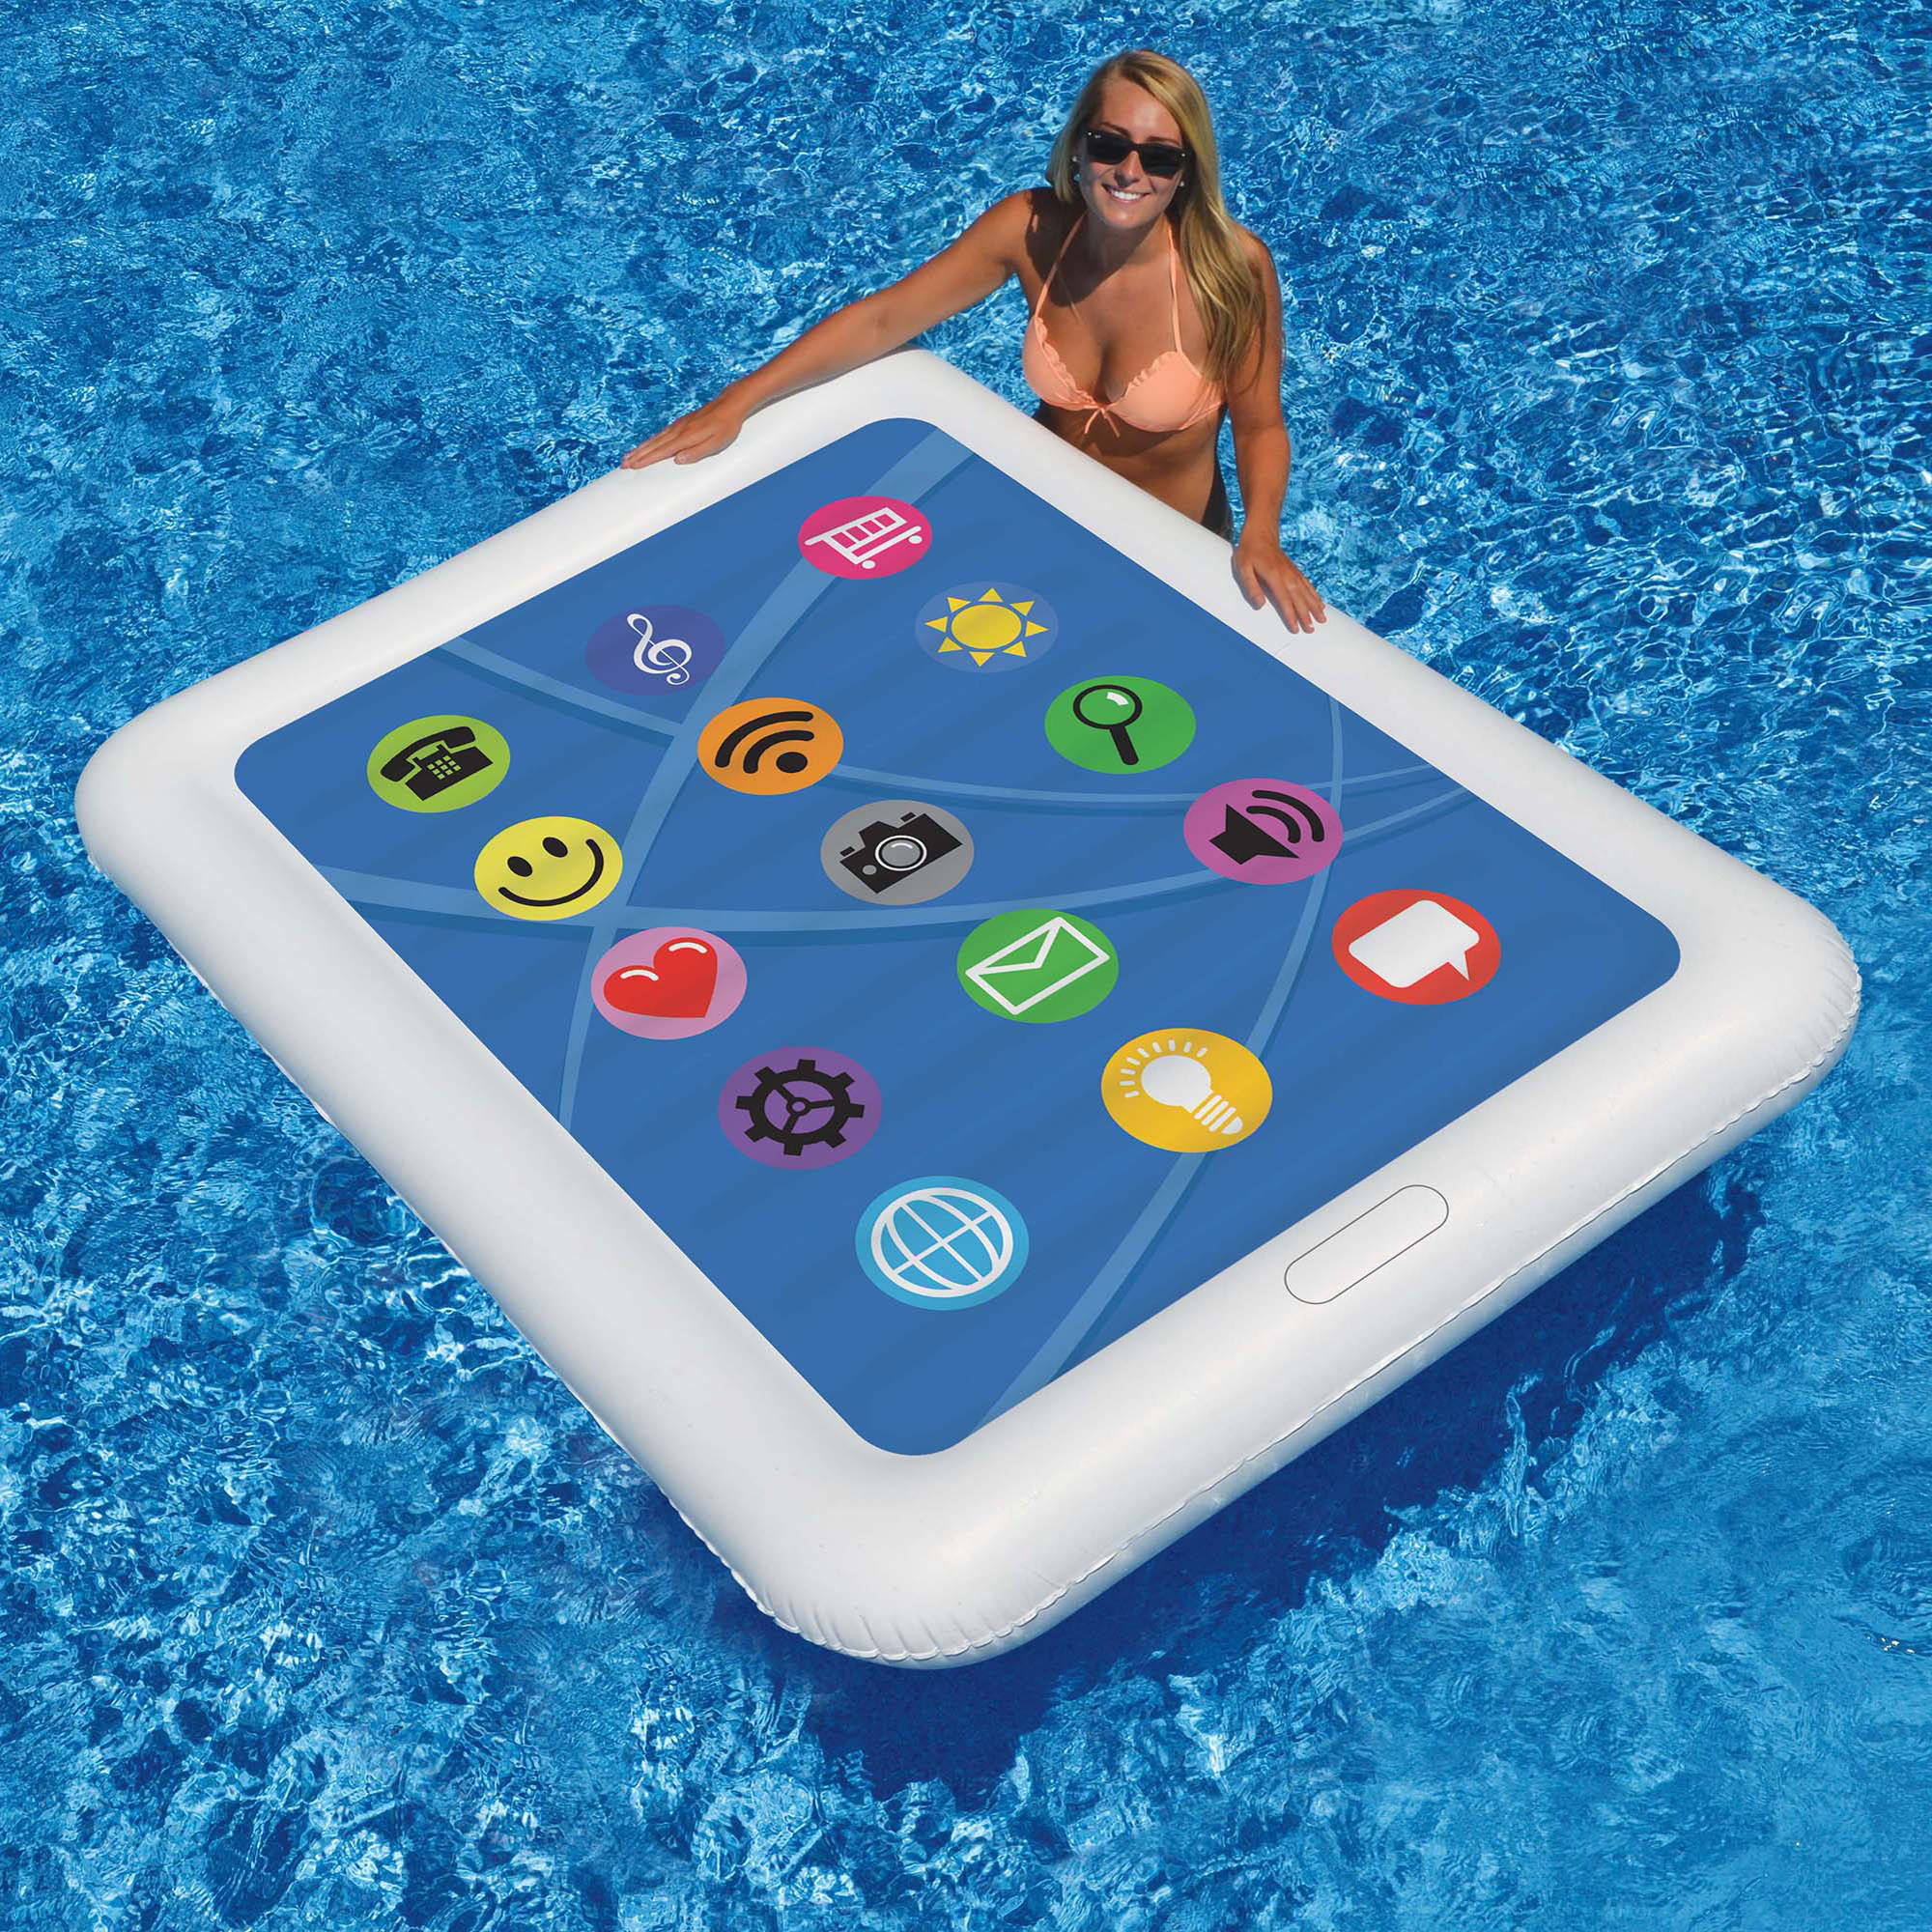 "Smart Tablet Float 67"" x 50"" Floating Pool Mattress"